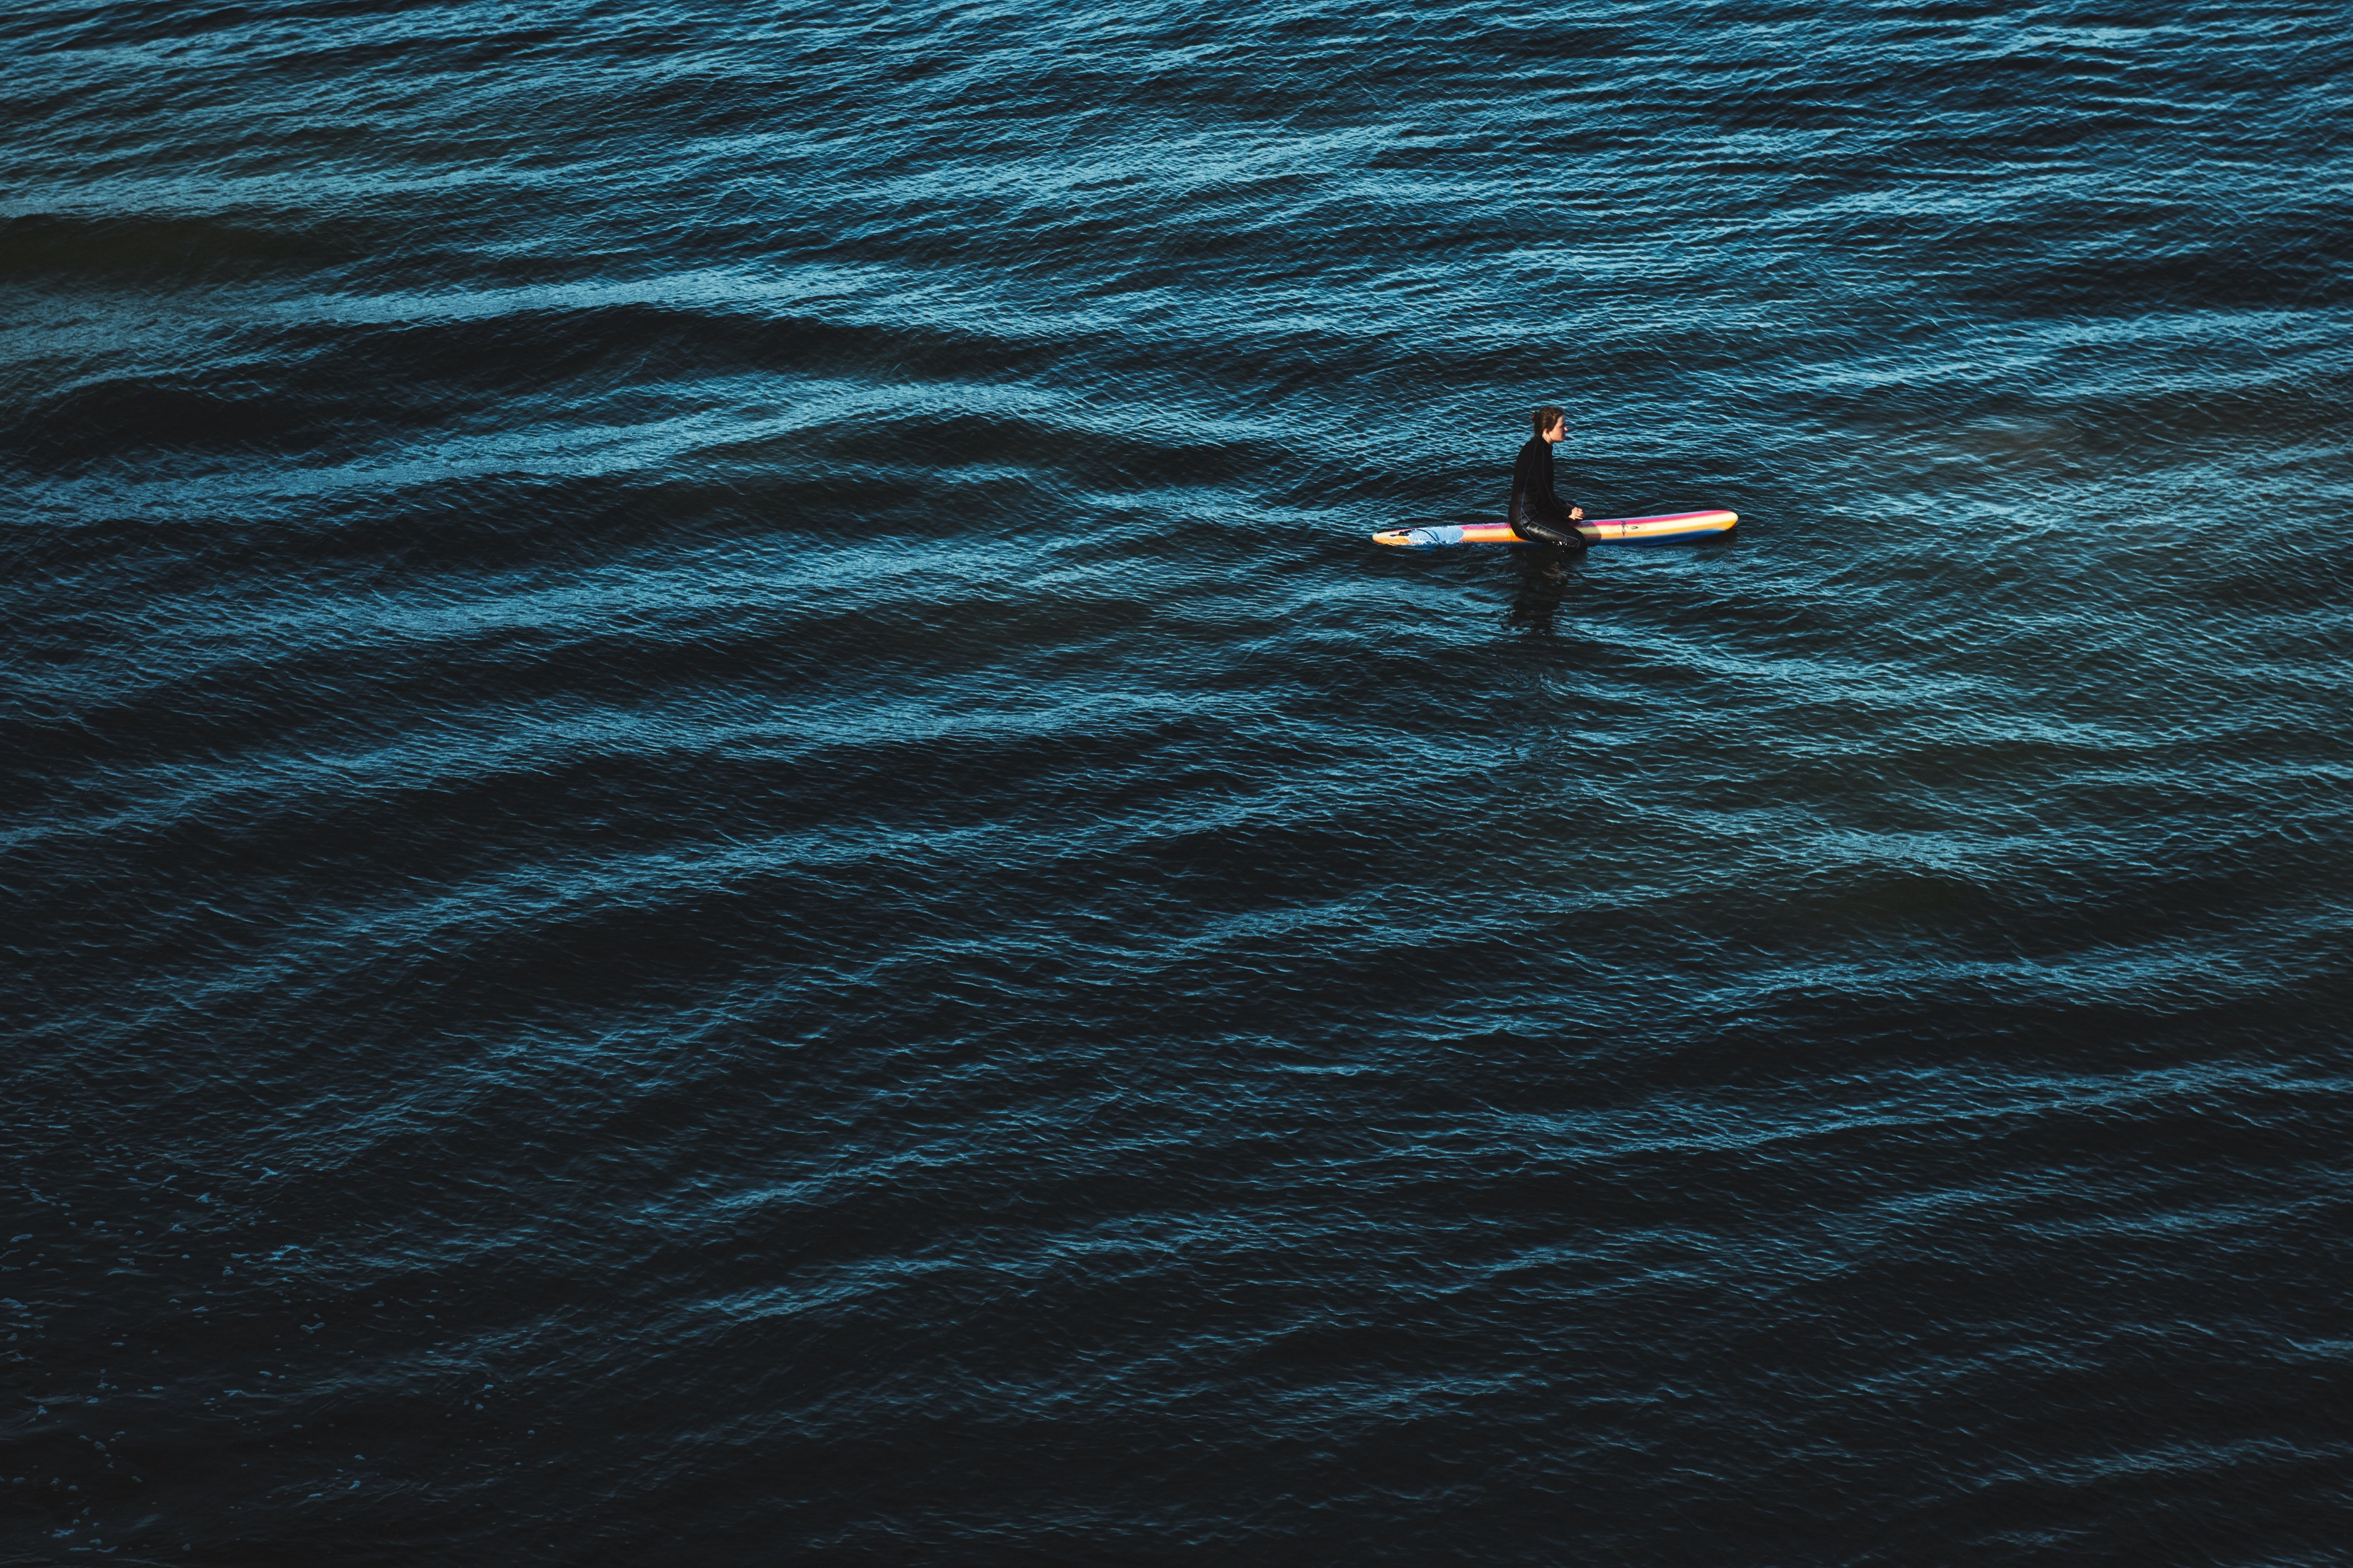 Photograph of the ocean. A person is sitting on a paddle board, waiting for a wave.